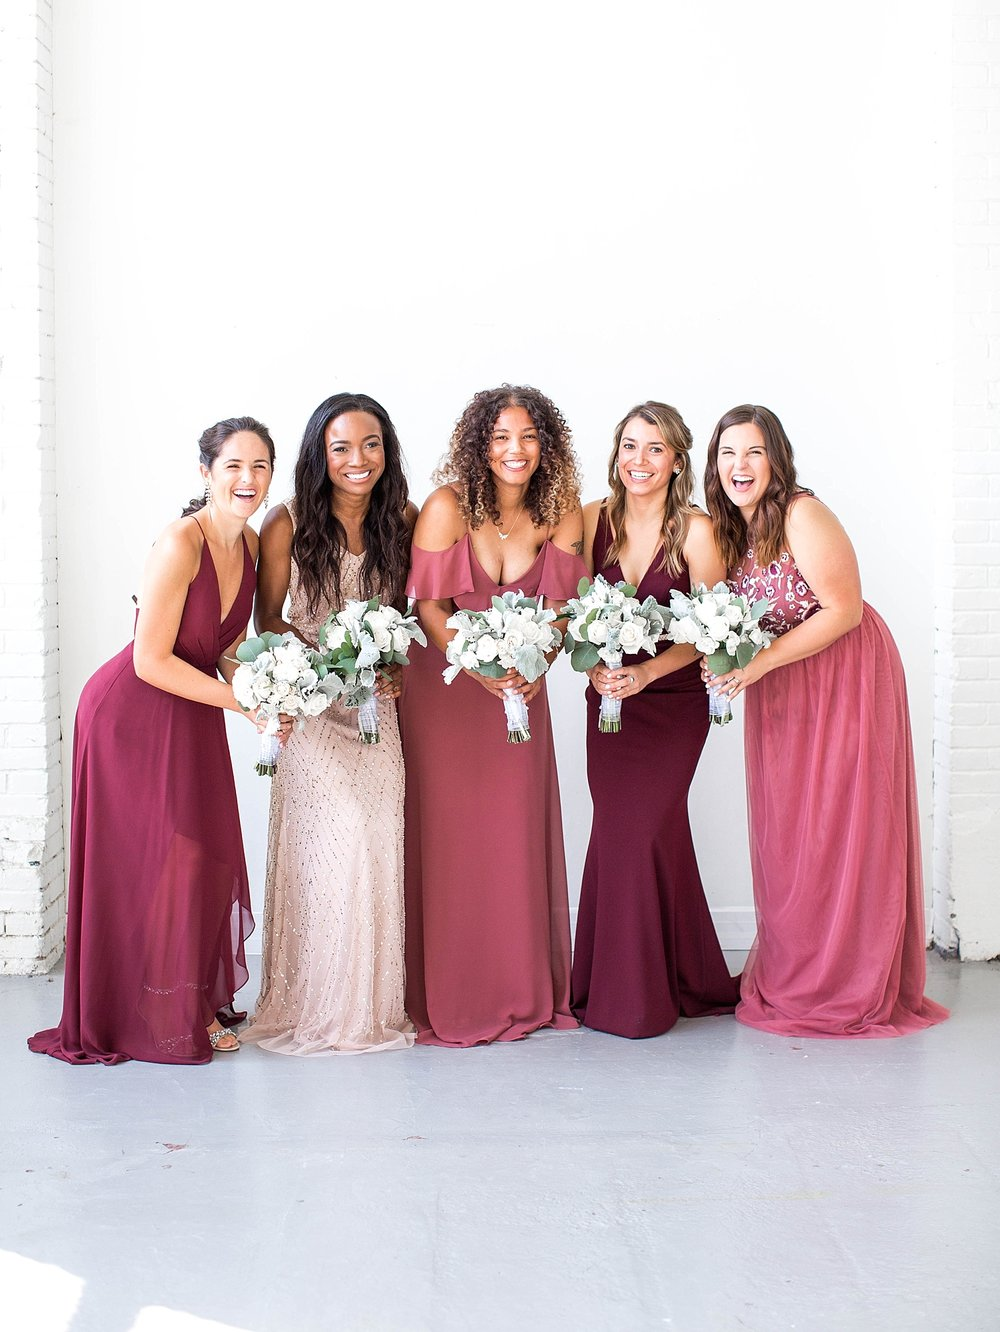 BHLDN Bridesmaids Dresses Campaign Philadelphia New Jersey Wedding Fashion Photography by Kelee Bovelle_0007.jpg